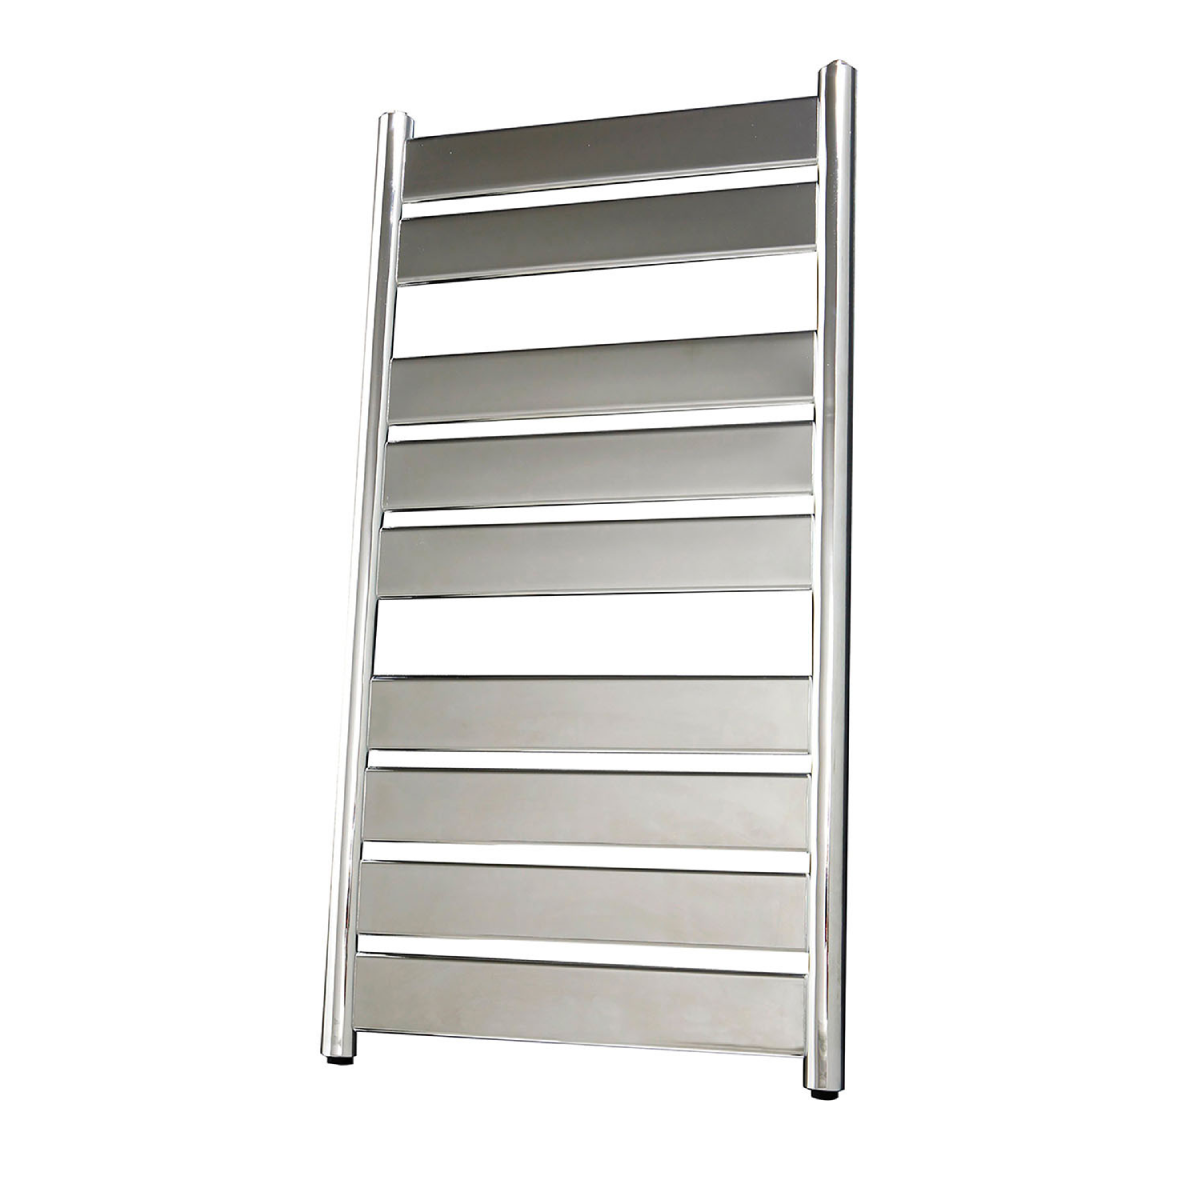 Frontline Riva Chrome Heated Towel Rail With Flat Towel Bar W500 H950